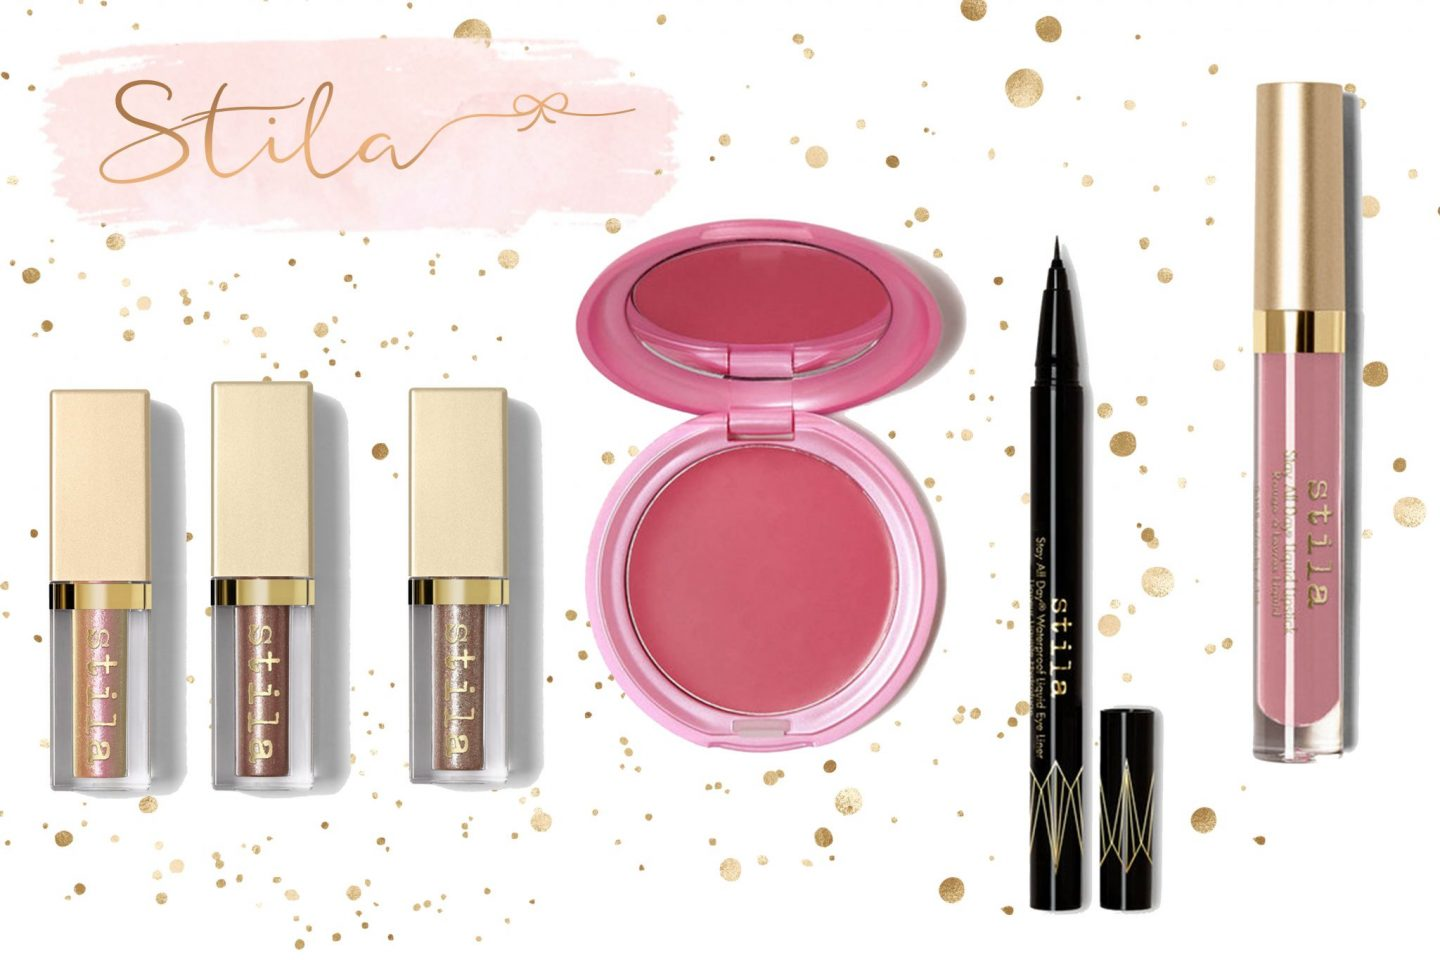 Makeup Brands I'm Dying To Try Out Now - Stila